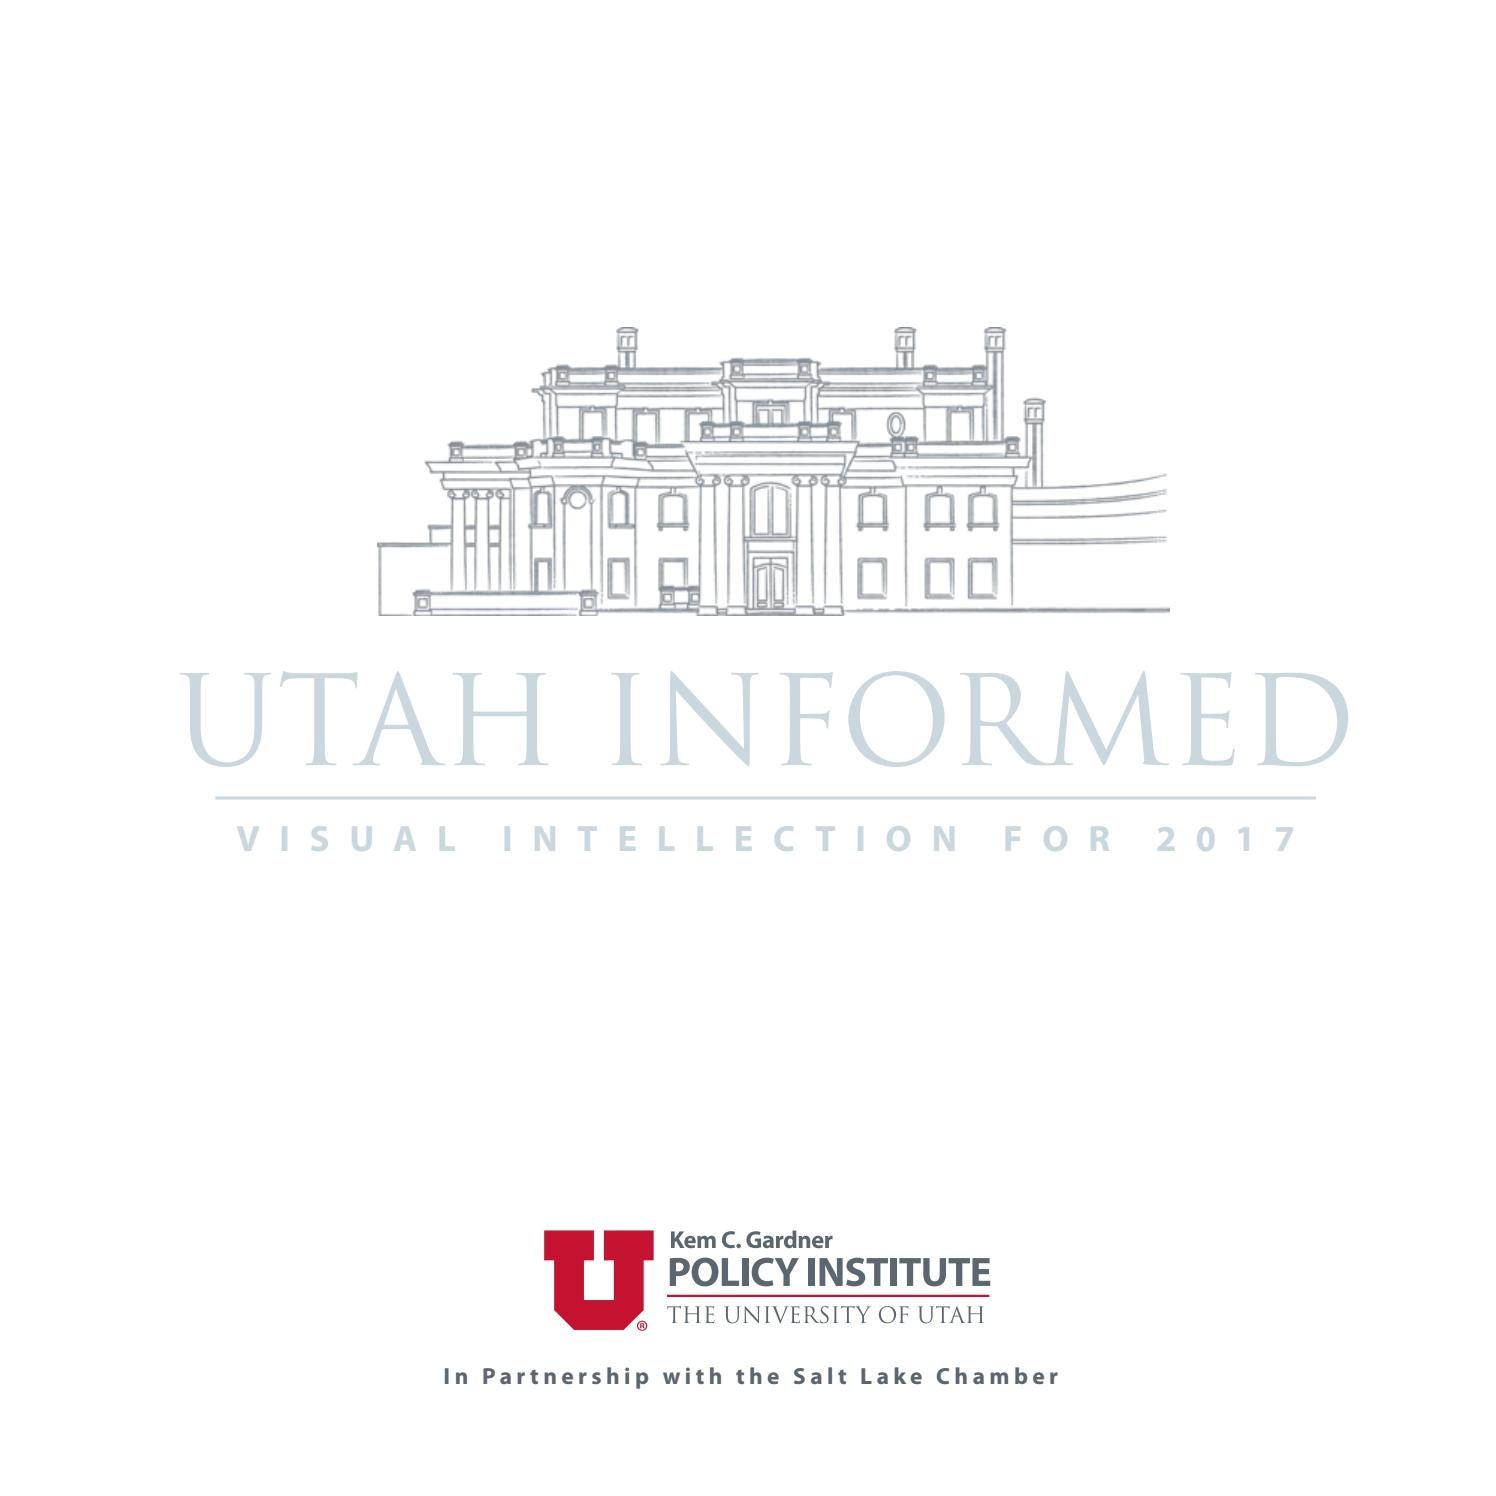 Utah Informed Visual Intellection for 2017 by David Eccles